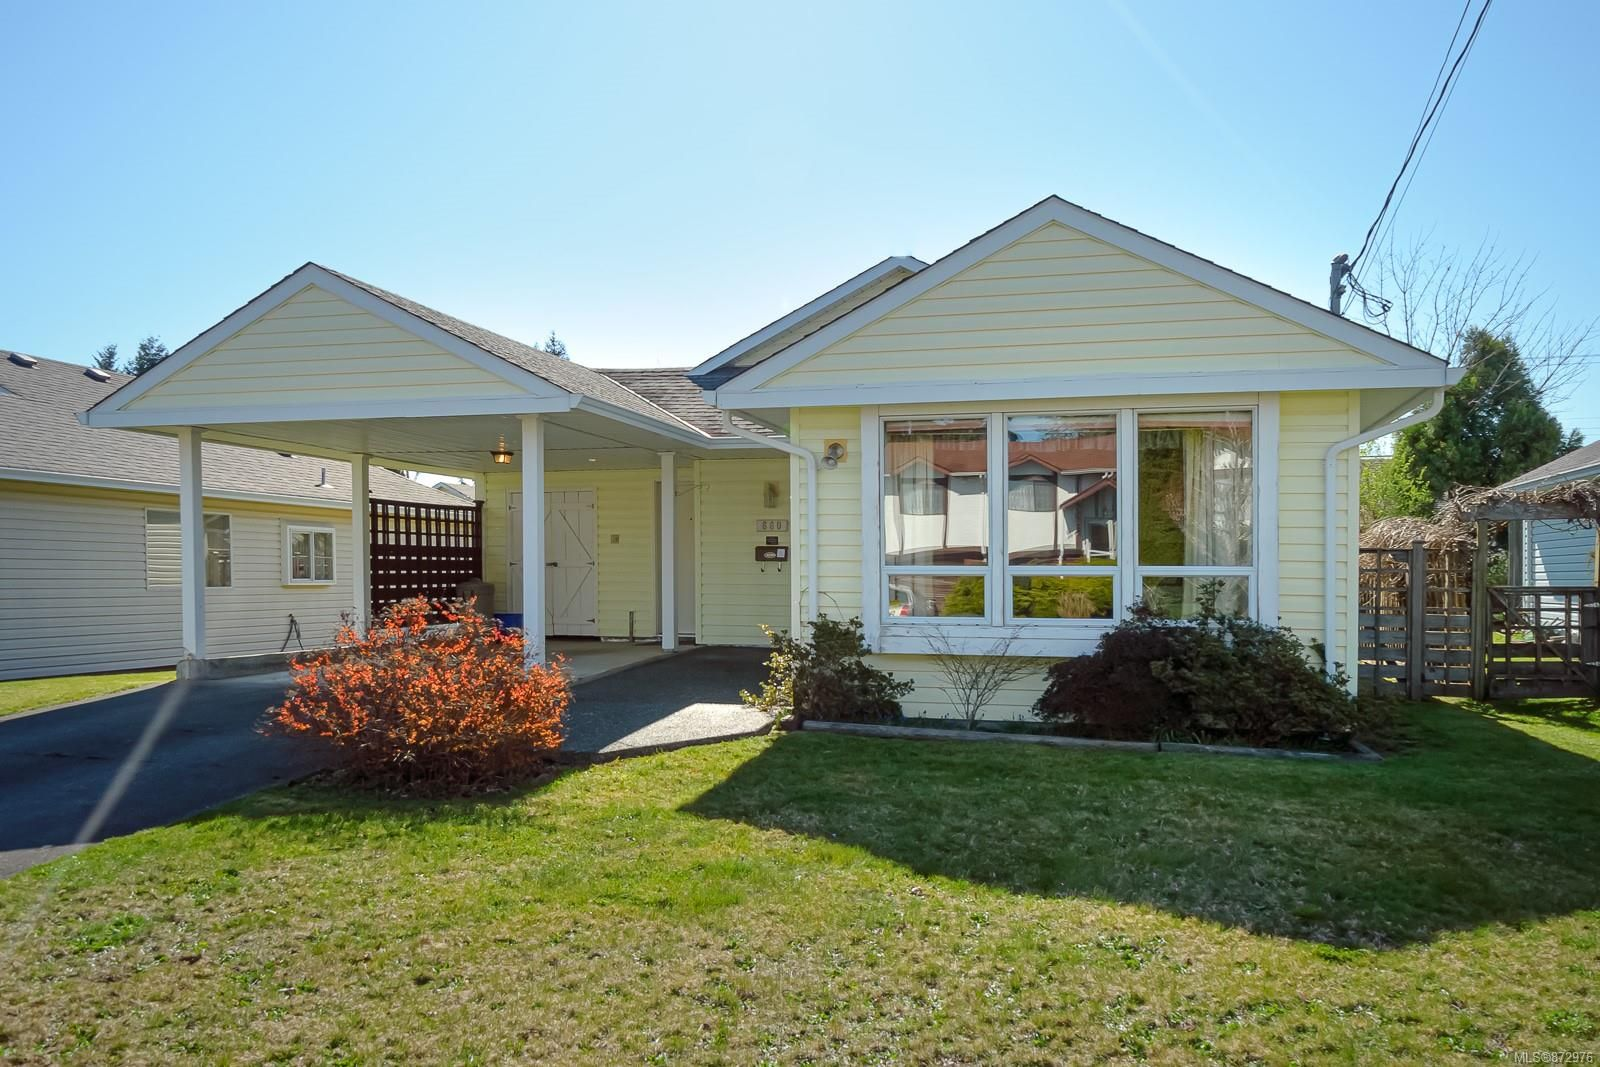 Main Photo: 660 25th St in : CV Courtenay City House for sale (Comox Valley)  : MLS®# 872976